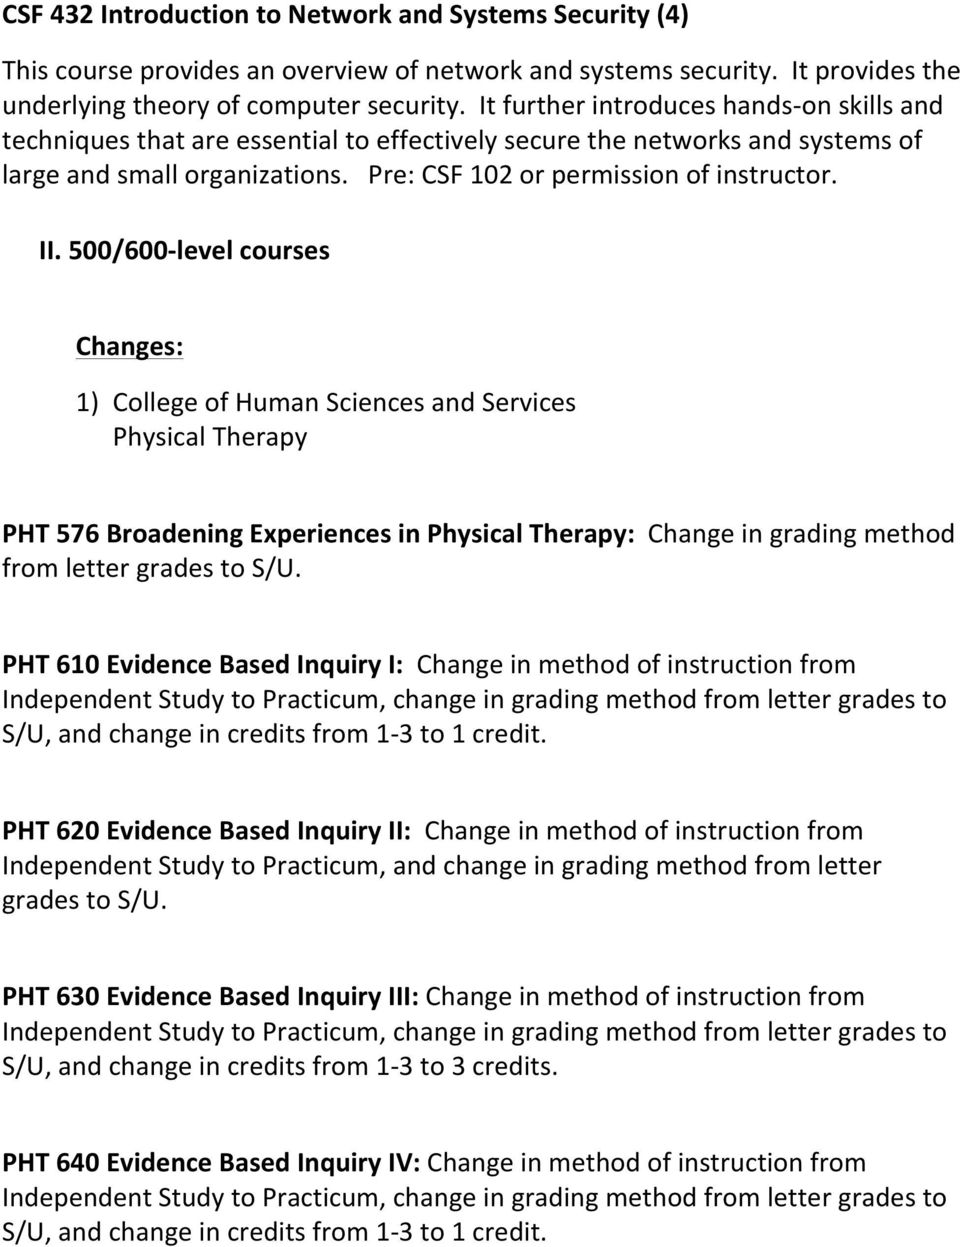 500/600- level courses Changes: 1) College of Human Sciences and Services Physical Therapy PHT 576 Broadening Experiences in Physical Therapy: Change in grading method from letter grades to S/U.